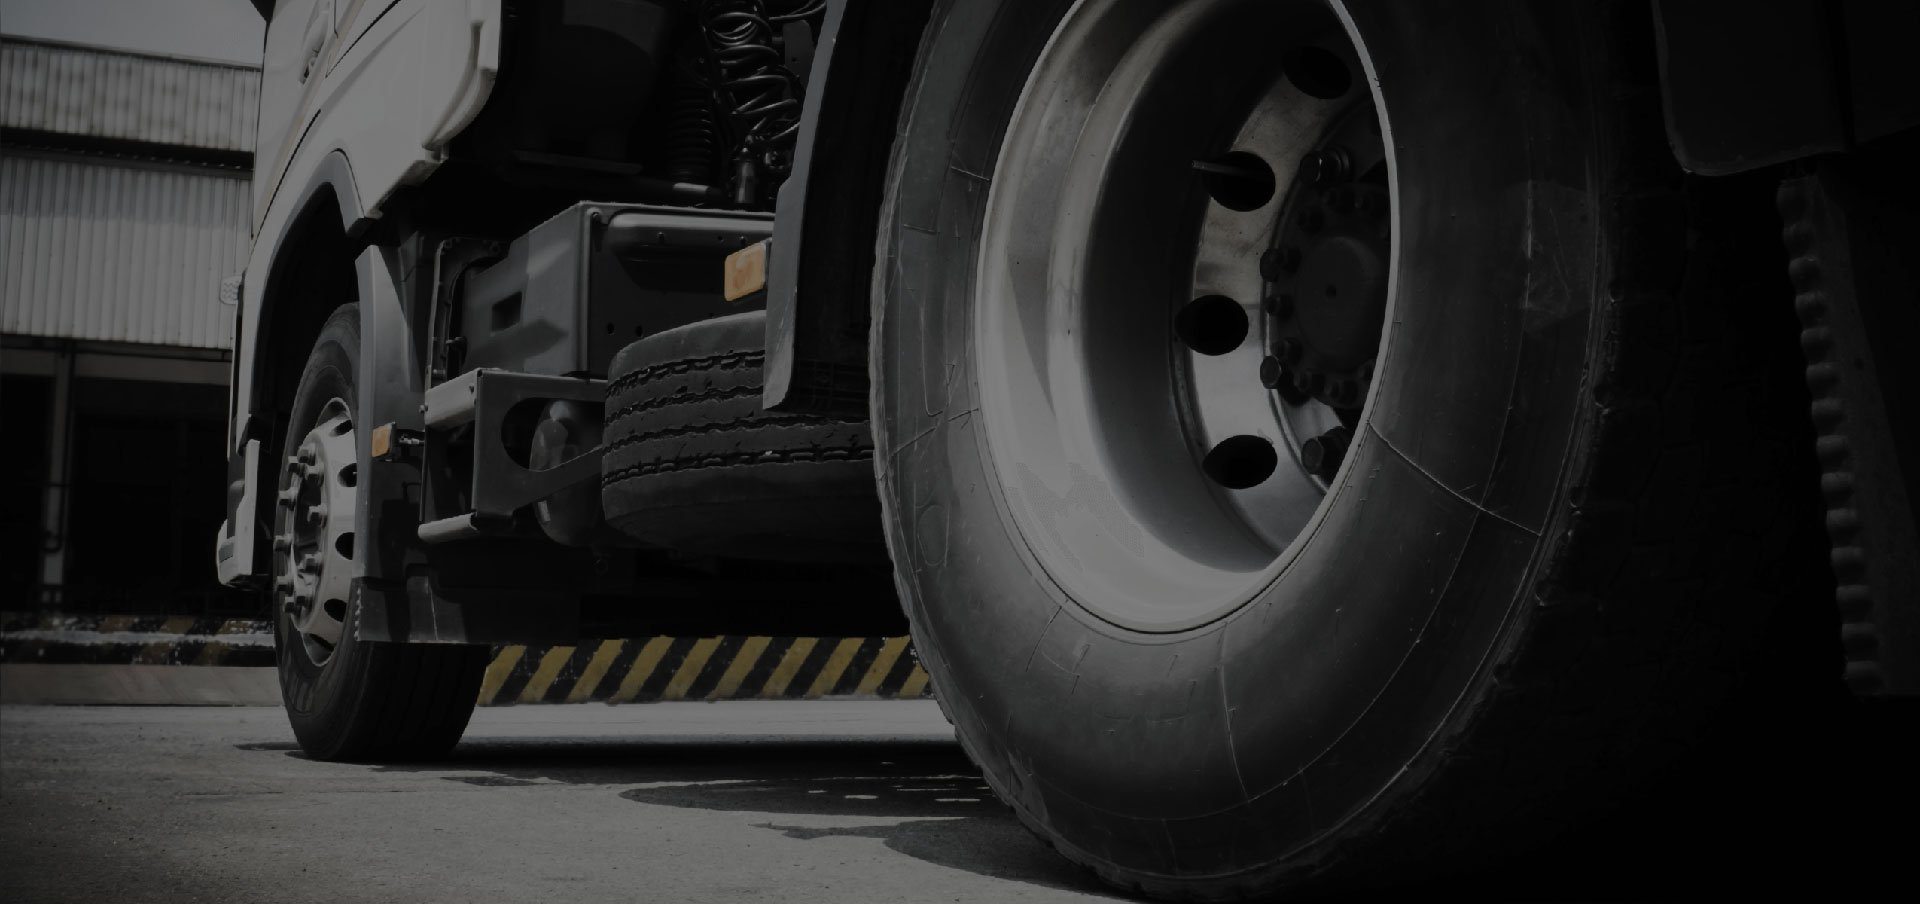 Katy Truck Parts provides truck parts and accessories in Houston, Texas and surrounding areas.